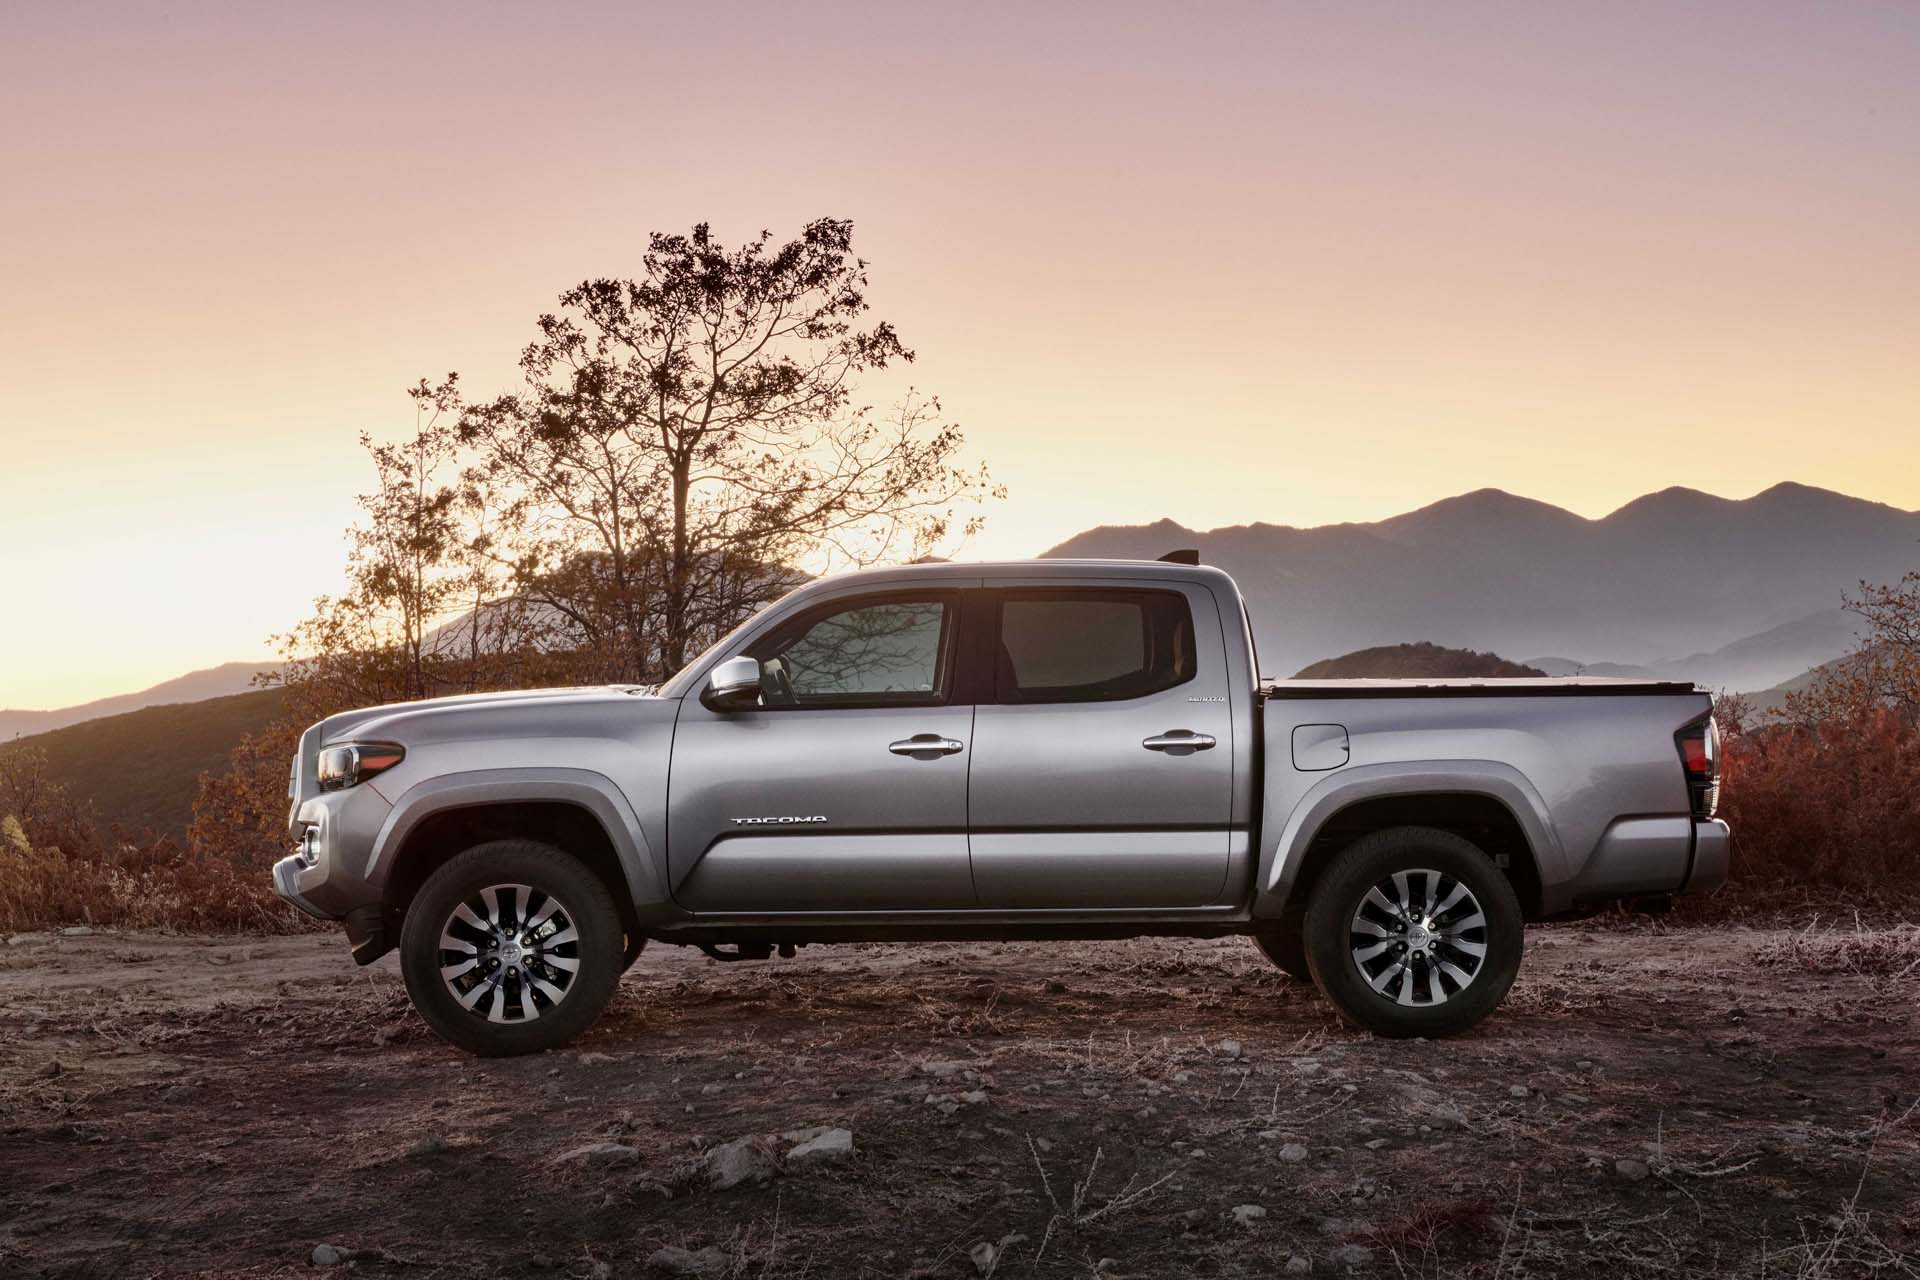 2020 Toyota Tacoma Review, Ratings, Specs, Prices, and ... on